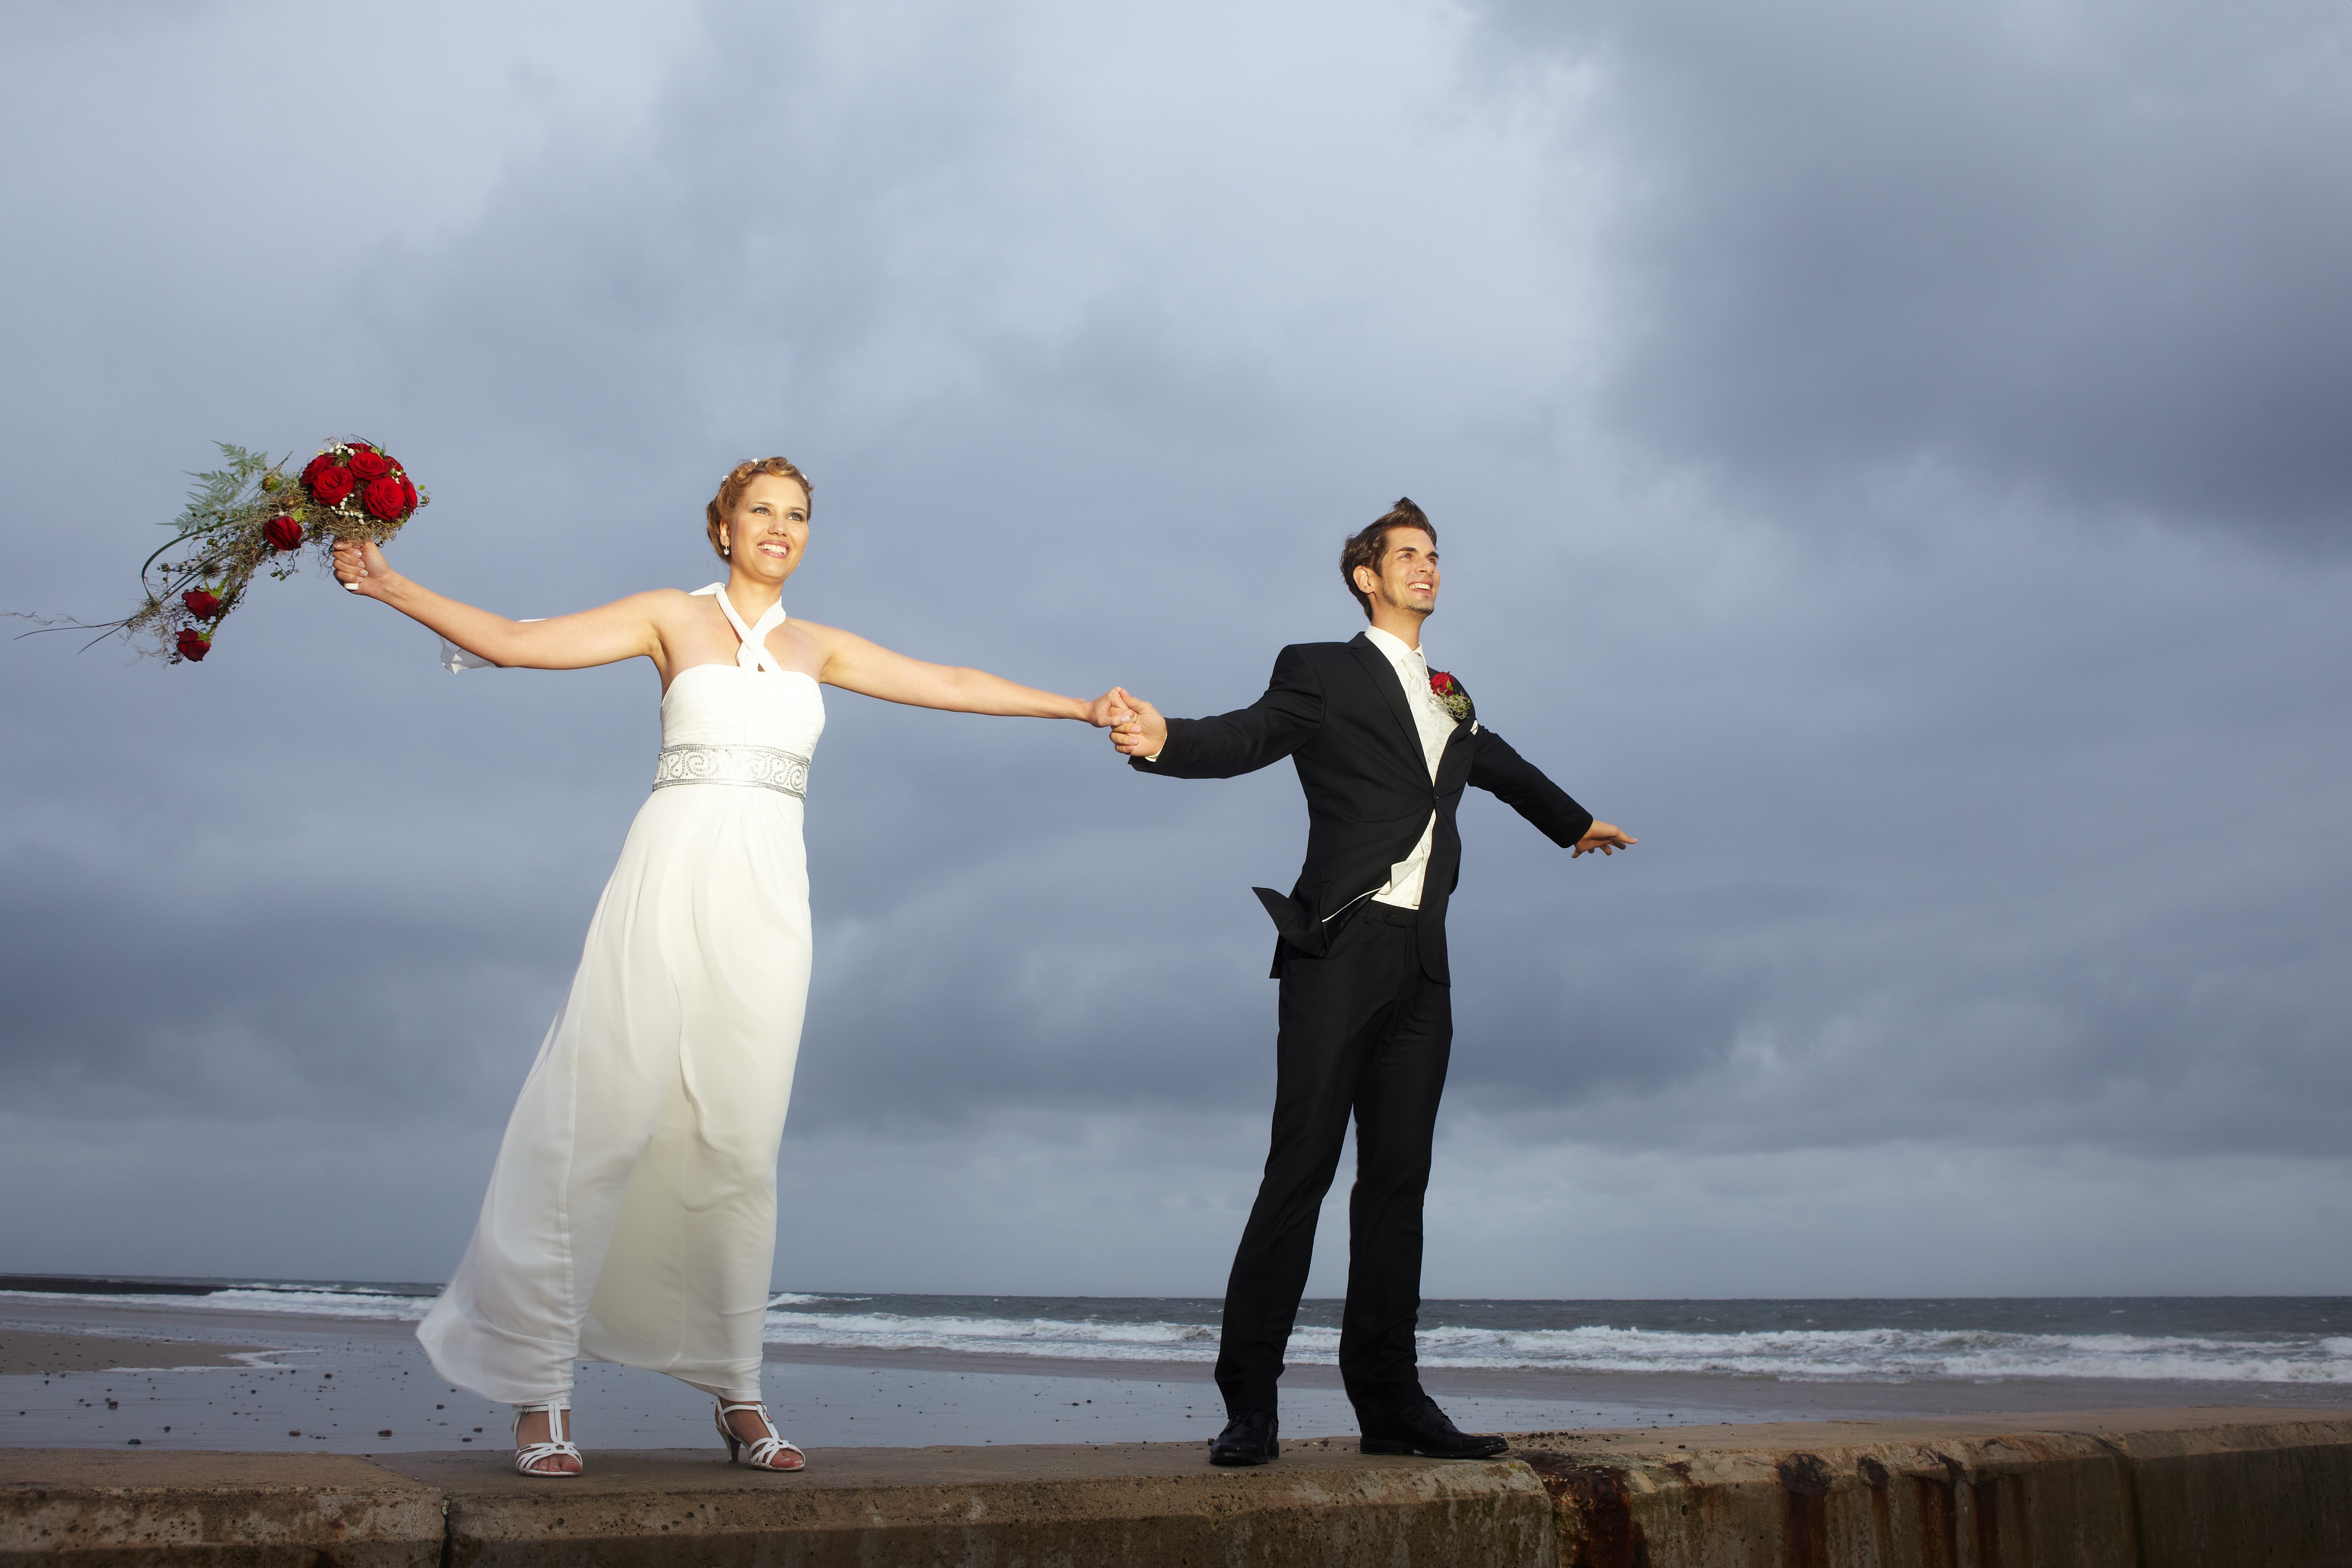 5 Ways to Survive Marital Storms